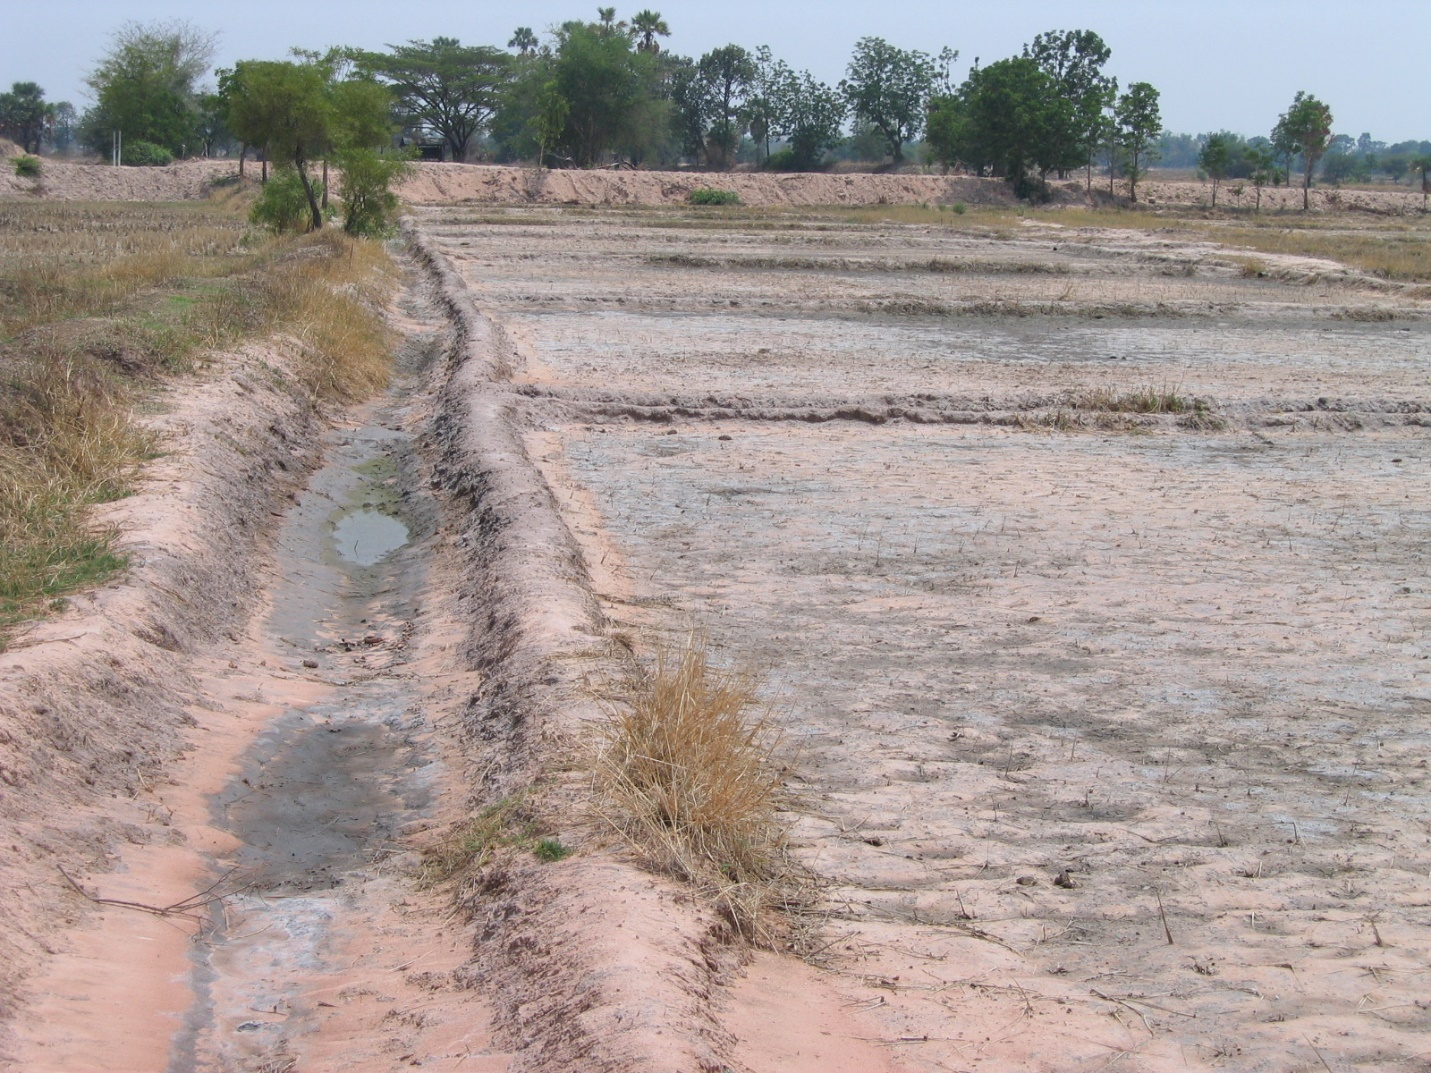 Saline soil in northeast Thailand. Soil salinity is difficult to manage although there are some technical options available (Photo by Y. Niino)